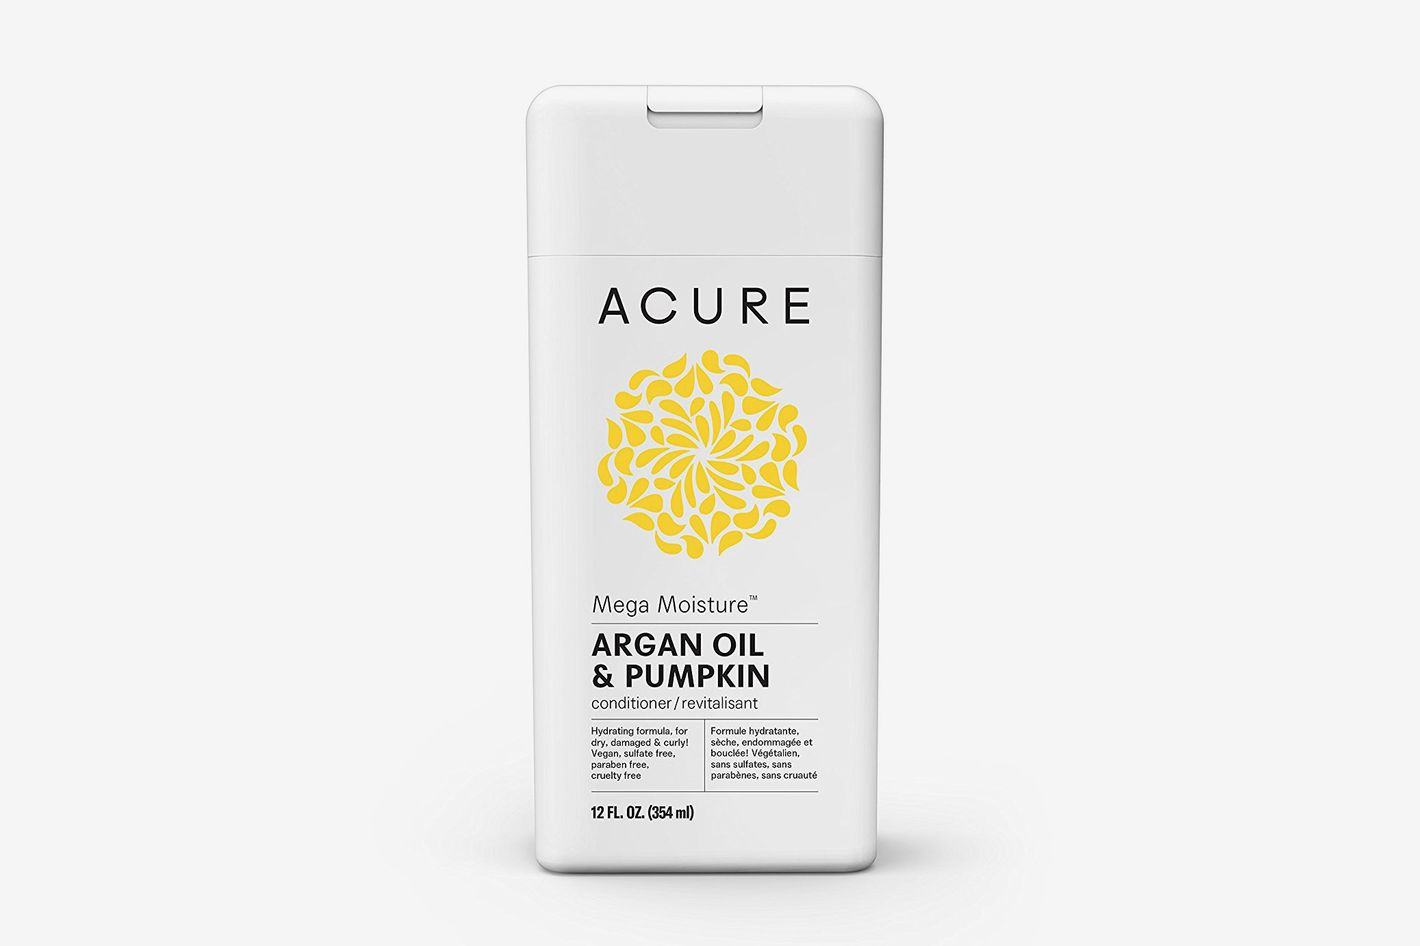 Acure Mega Moisture Conditioner